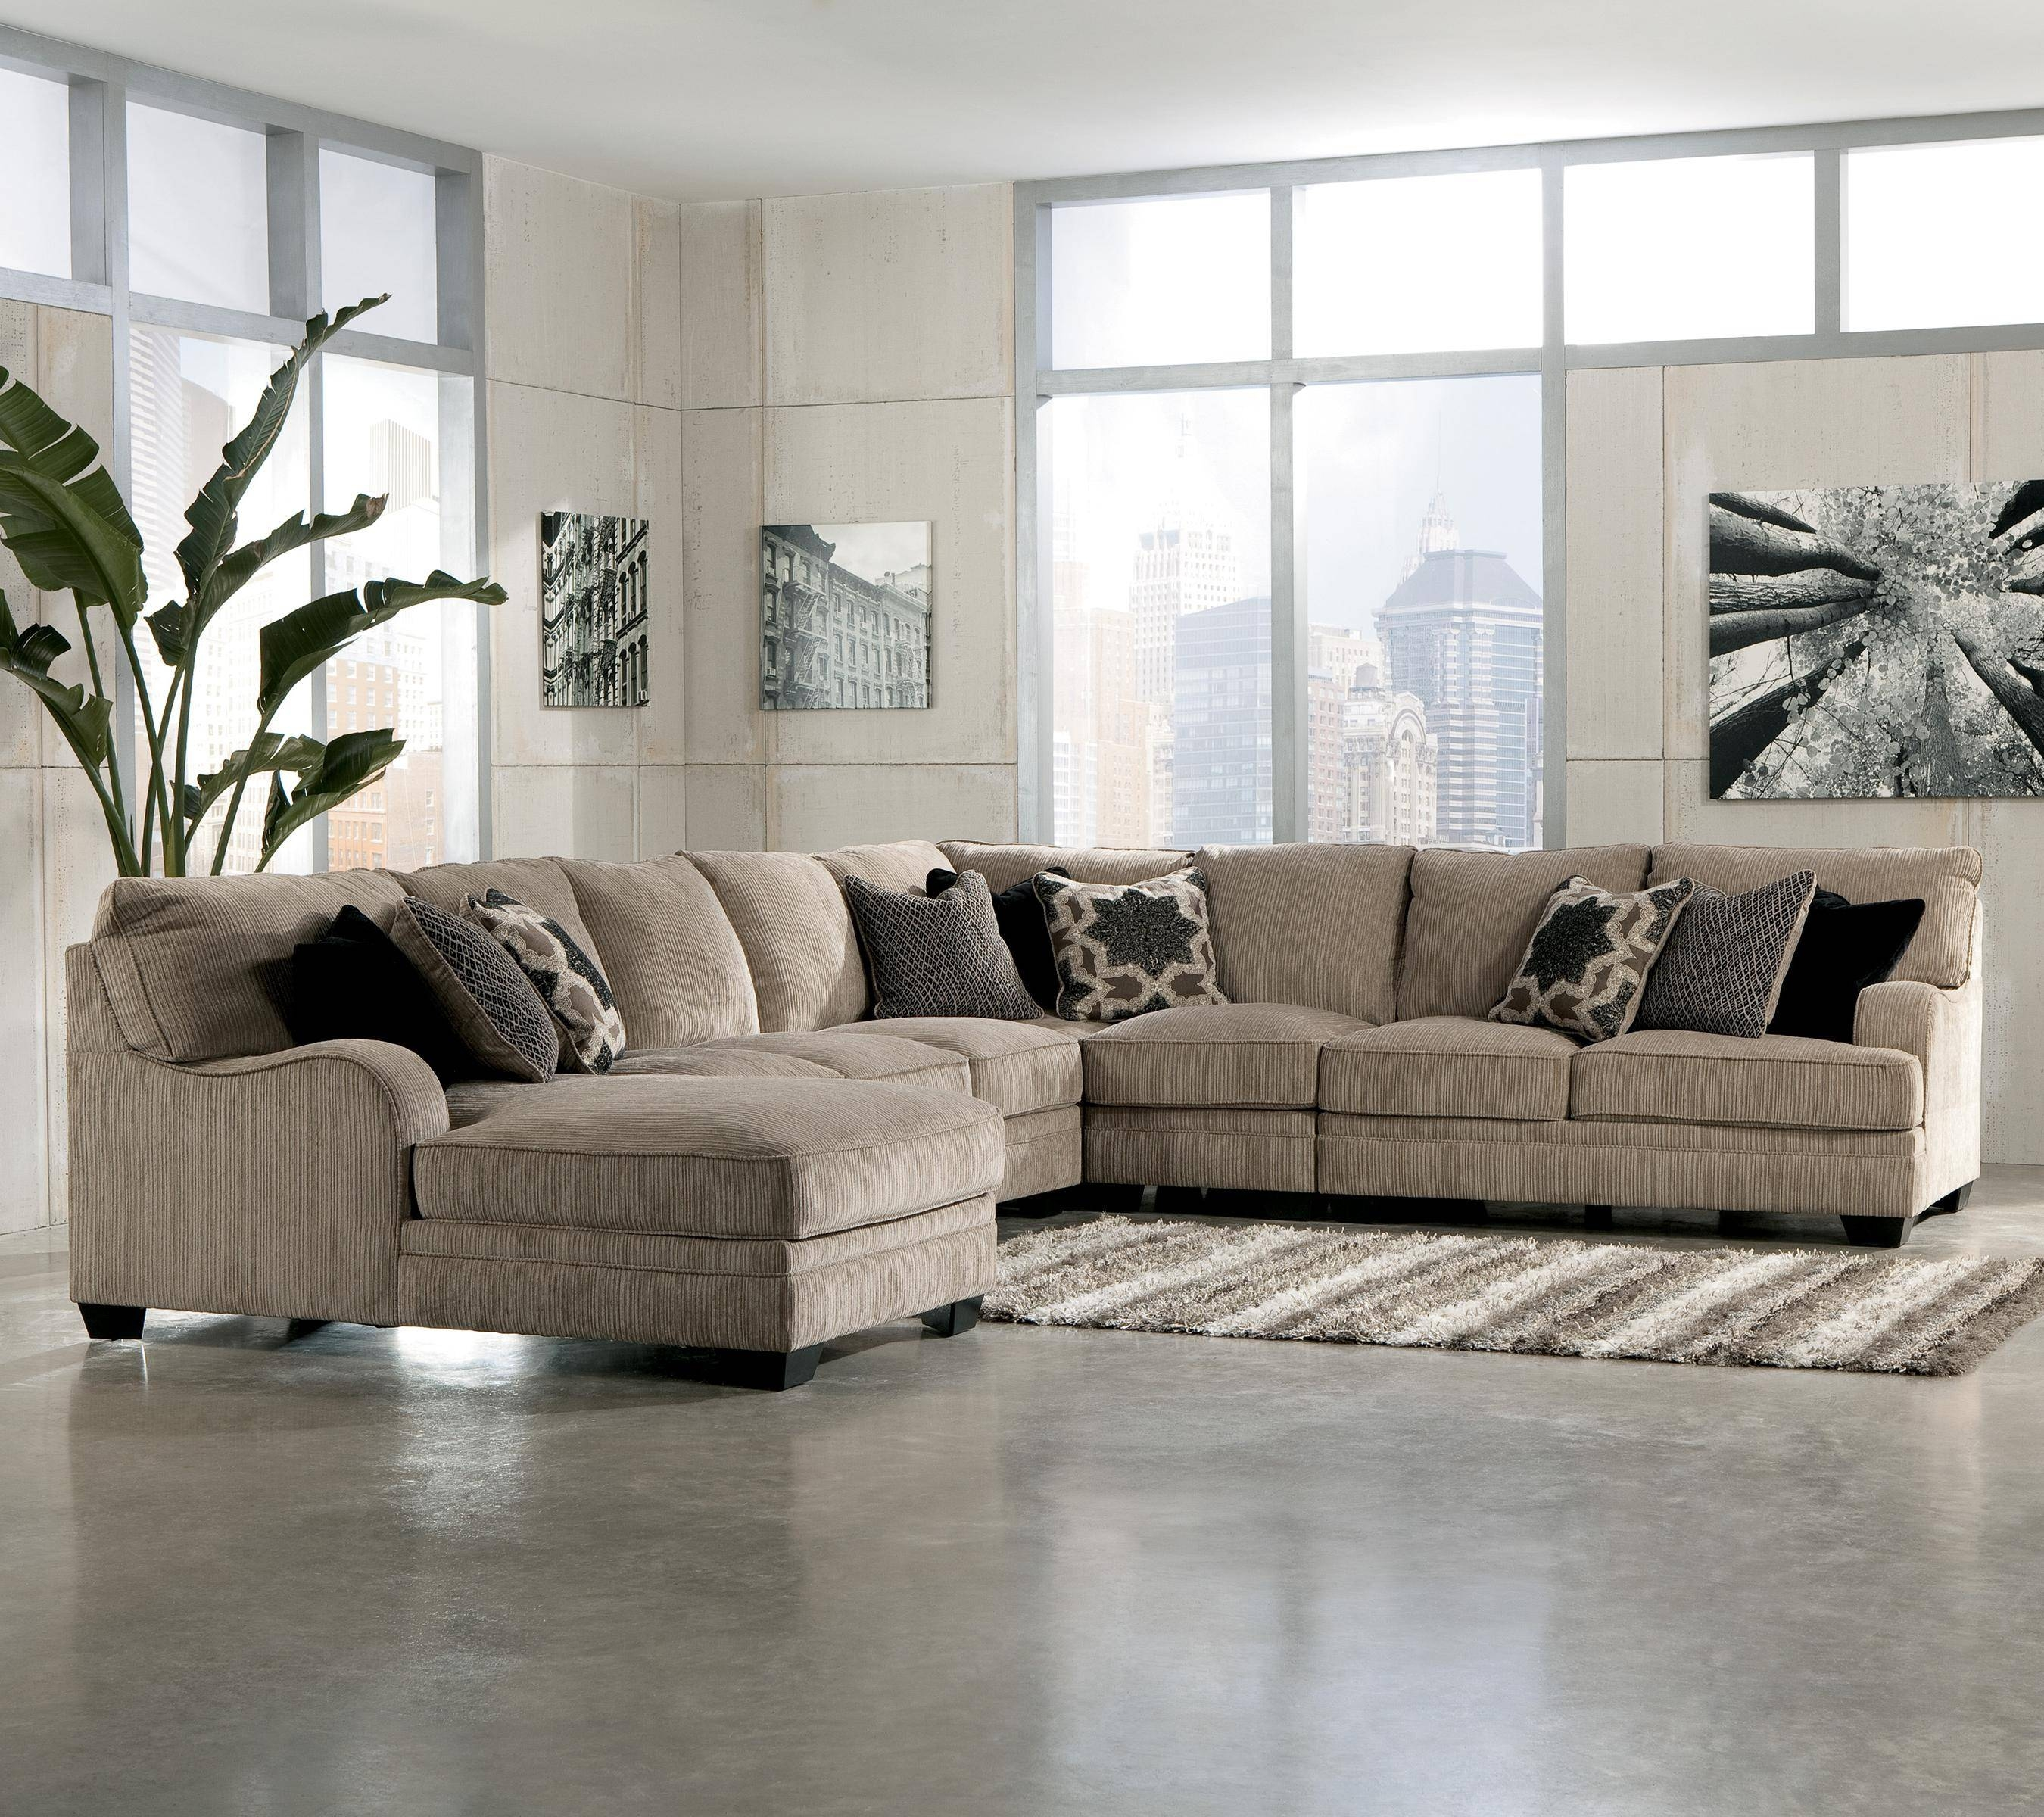 30 Collection of 3 Piece Sectional Sleeper Sofa